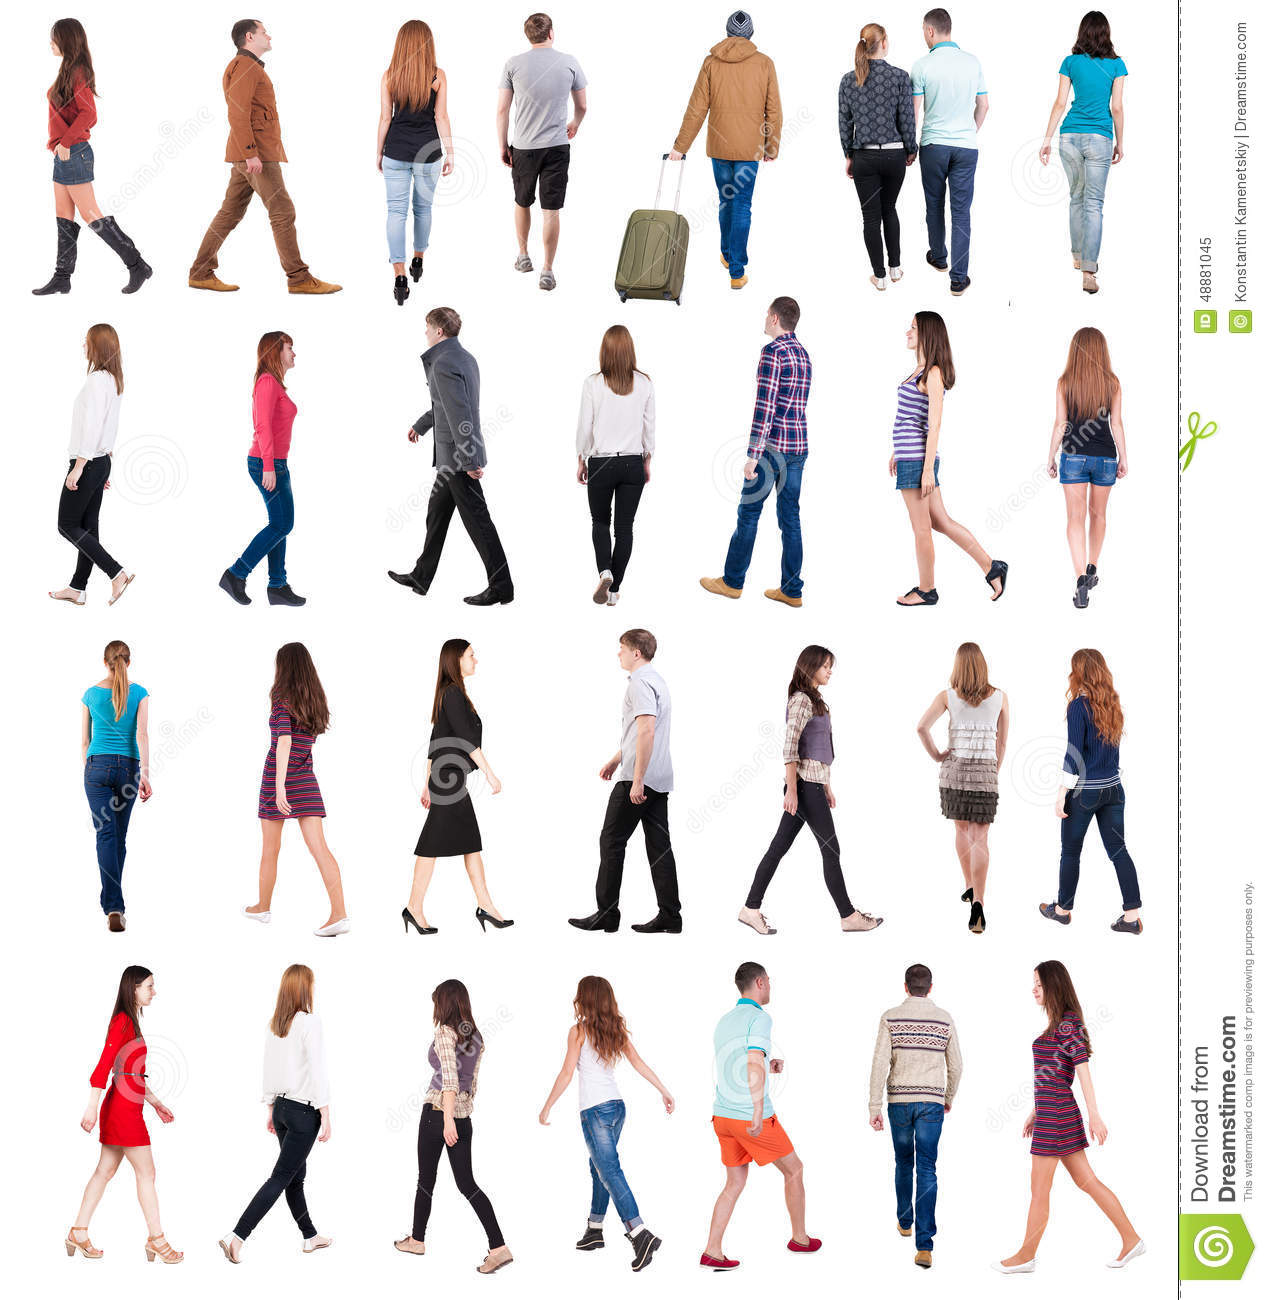 Going People In Motion Set Stock Photo Image 48881045